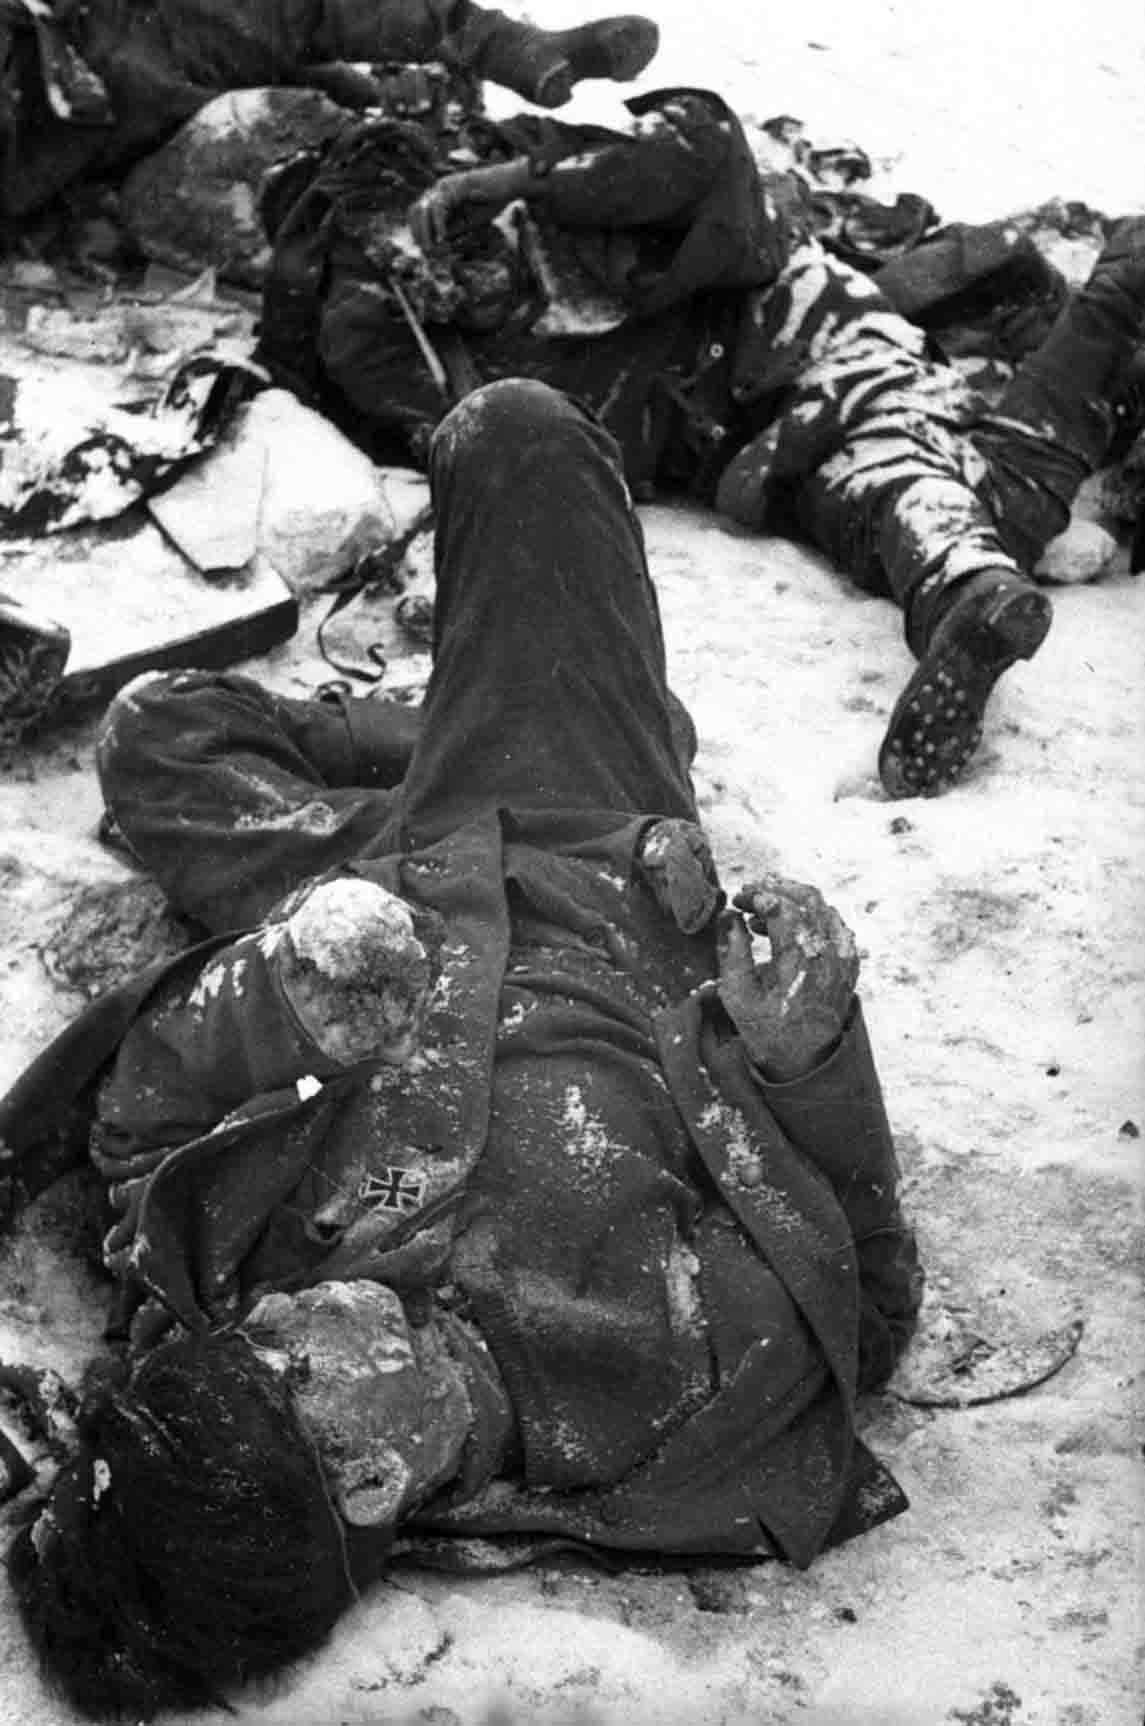 German soldiers killed in the Battle of Stalingrad. Note the Iron Cross still on the tunic in the foreground.